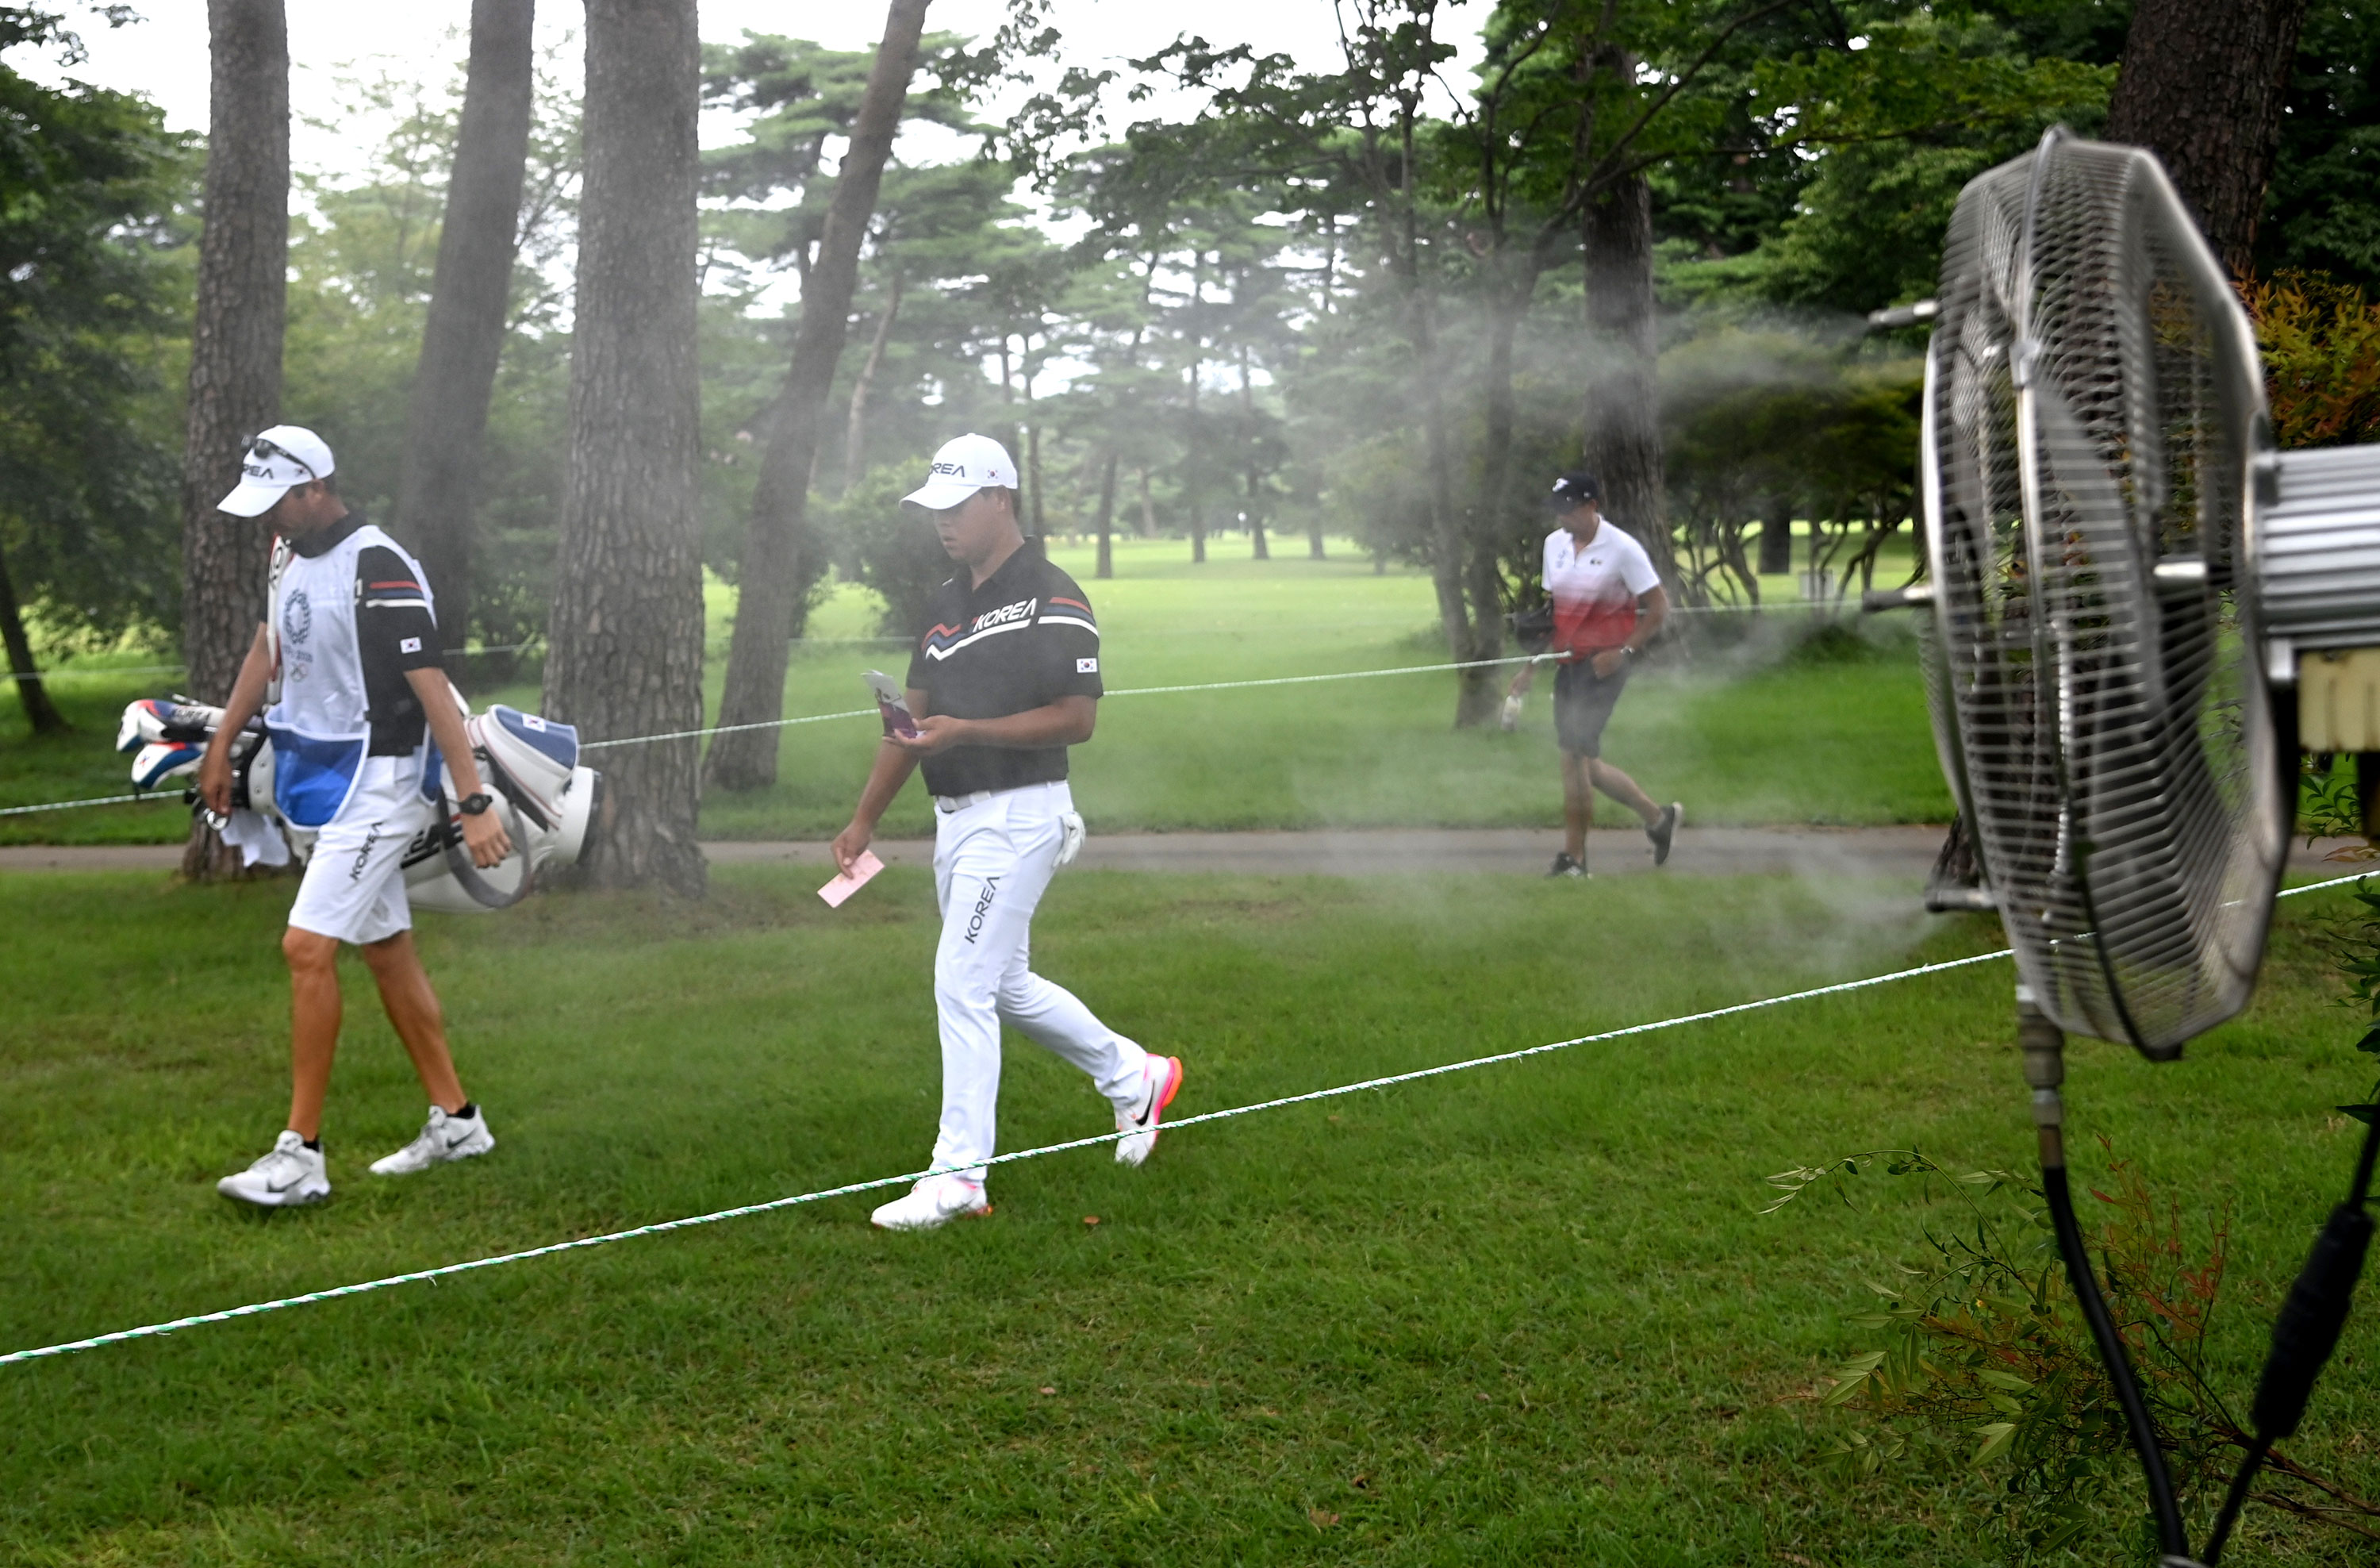 Kim Si Woo of South Korea walks past a fan spraying mist during golf competition in Kawagoe, Japan, on July 29.